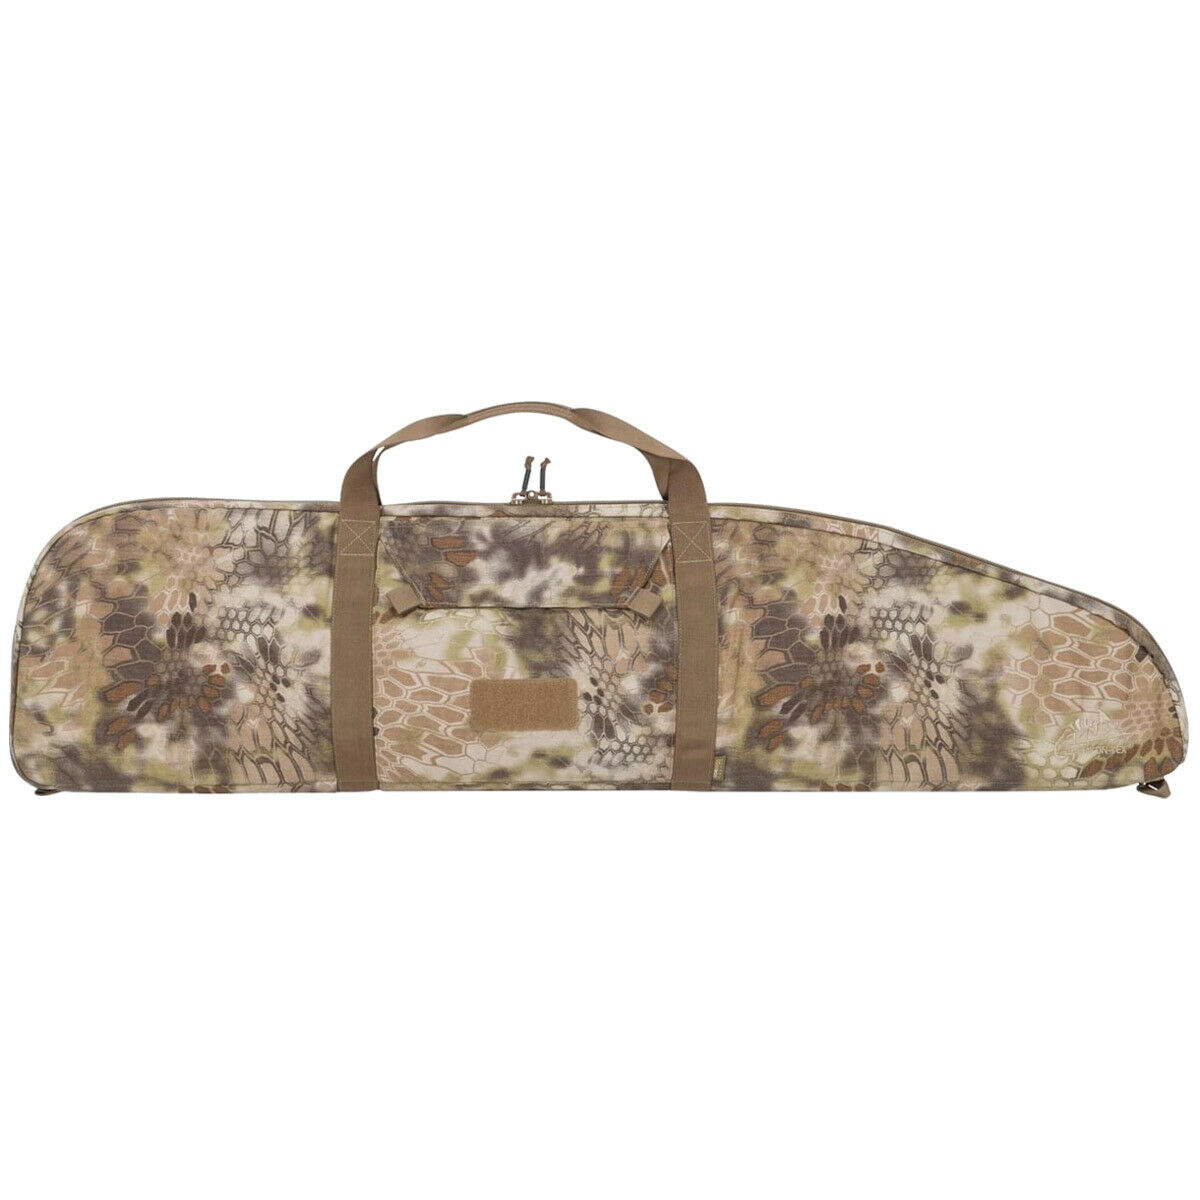 Helikon Basic Rifle Case Range Gun Carrier Shoulder Bag Kryptek Highlander Camo